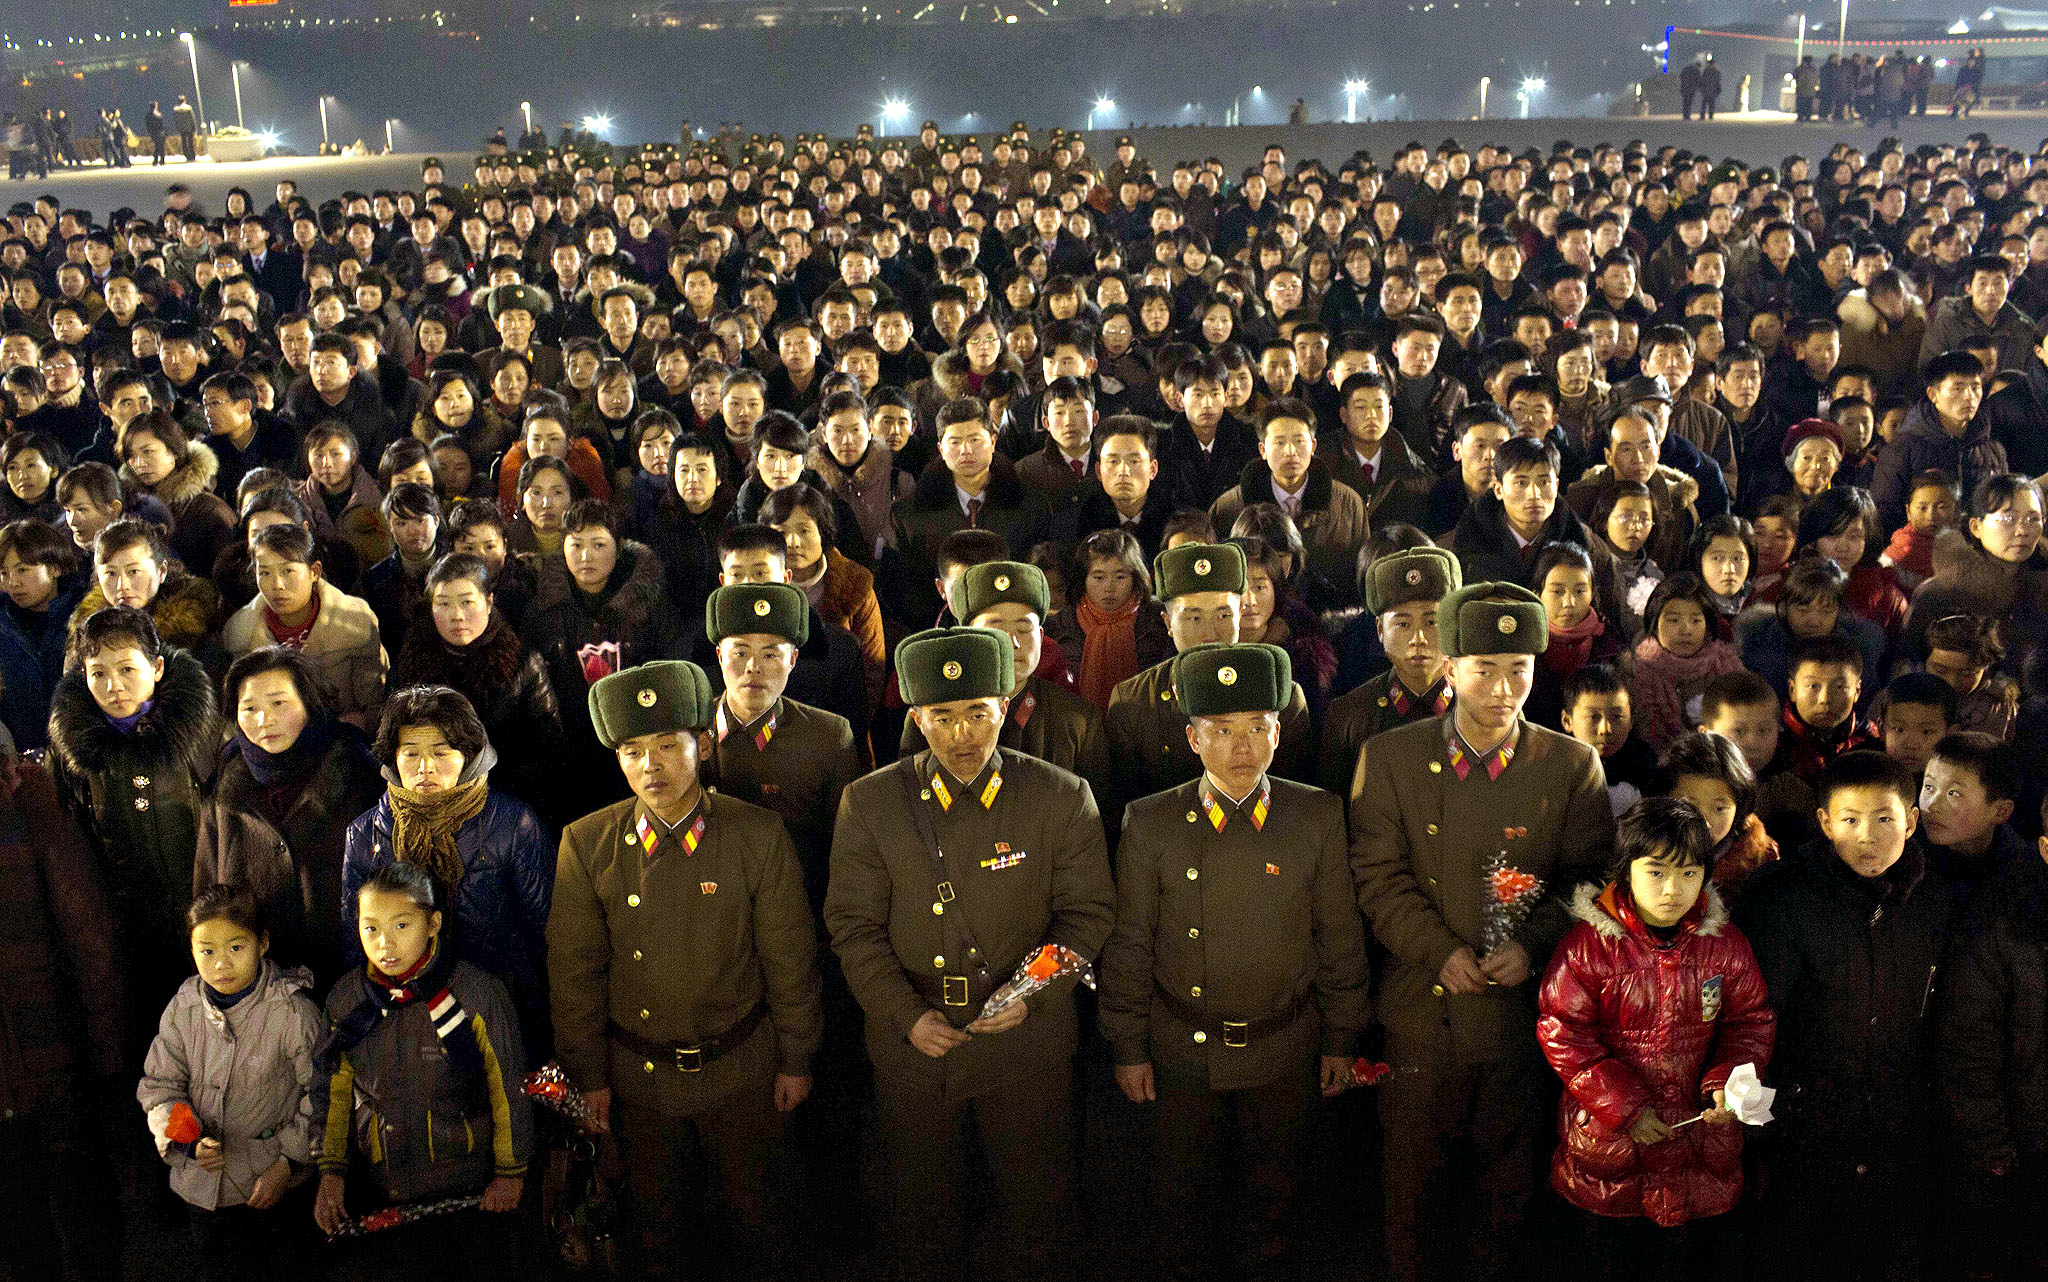 North Koreans gather together on the steps of Mansu Hill to lay flowers at the base of statues of the late leaders, Kim Il Sung and Kim Jong Il, in Pyongyang, North Korea, Monday, Dec. 16, 2013, the eve of the second anniversary of the death of Kim Jong Il.